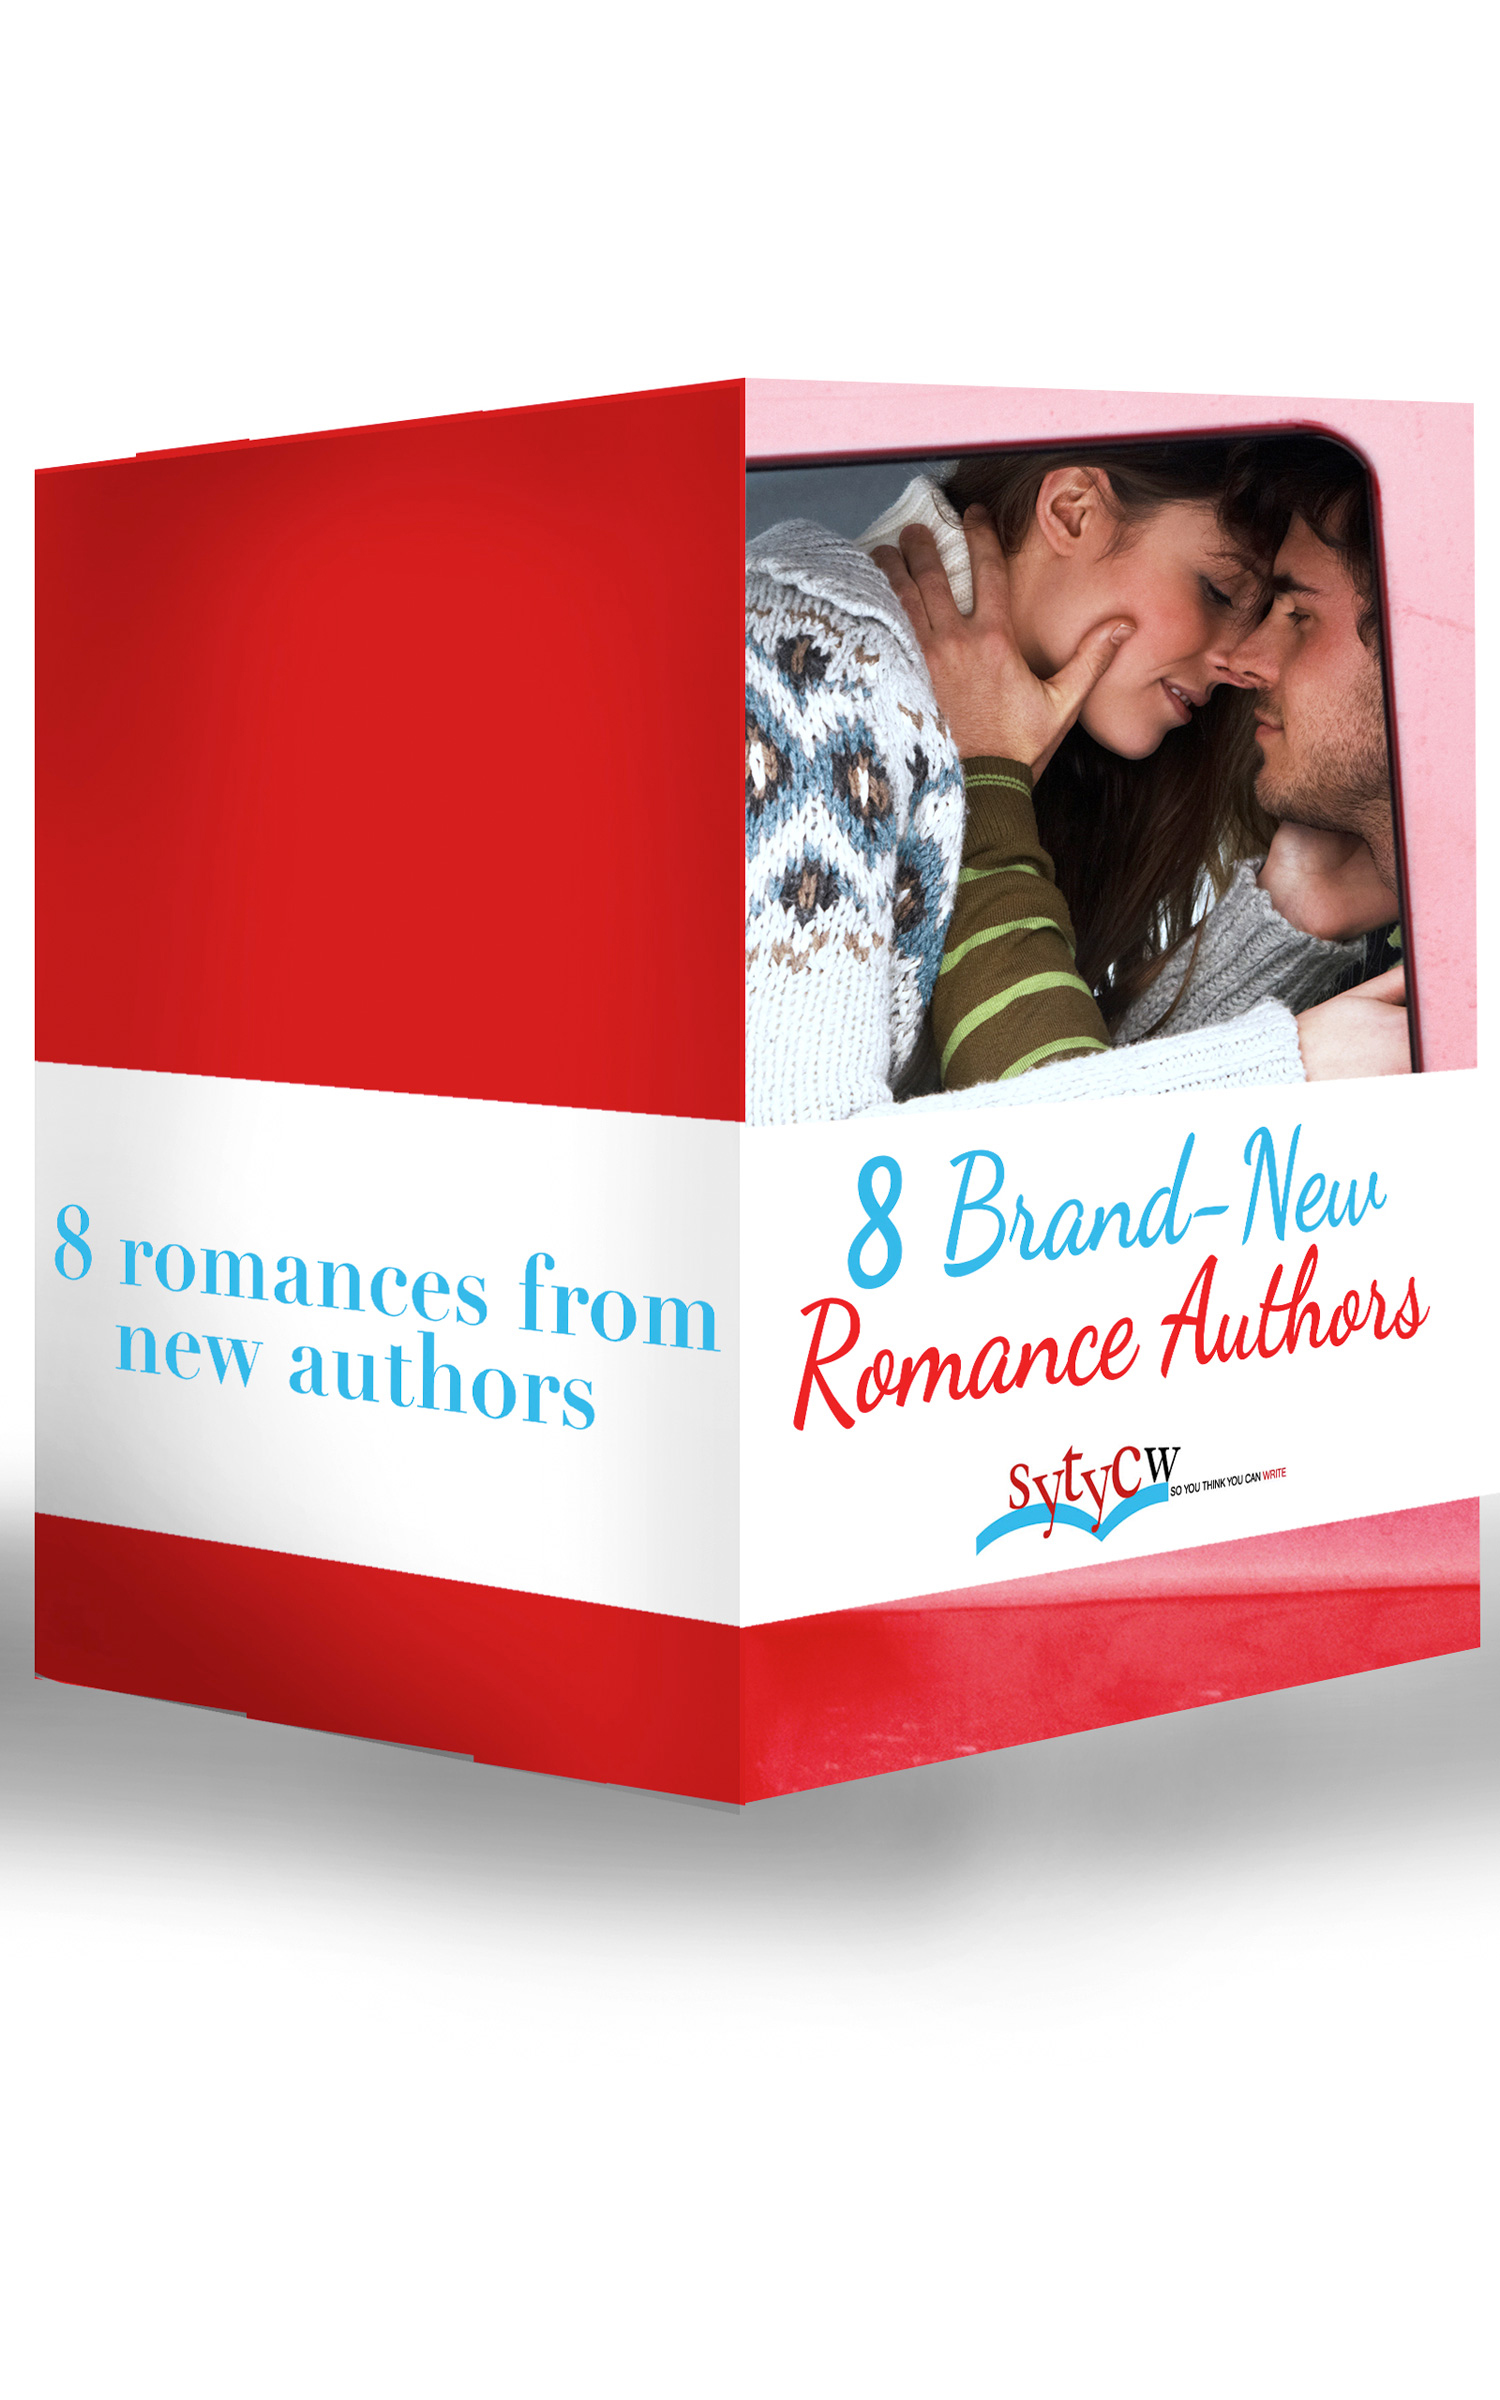 8 Brand-New Romance Authors